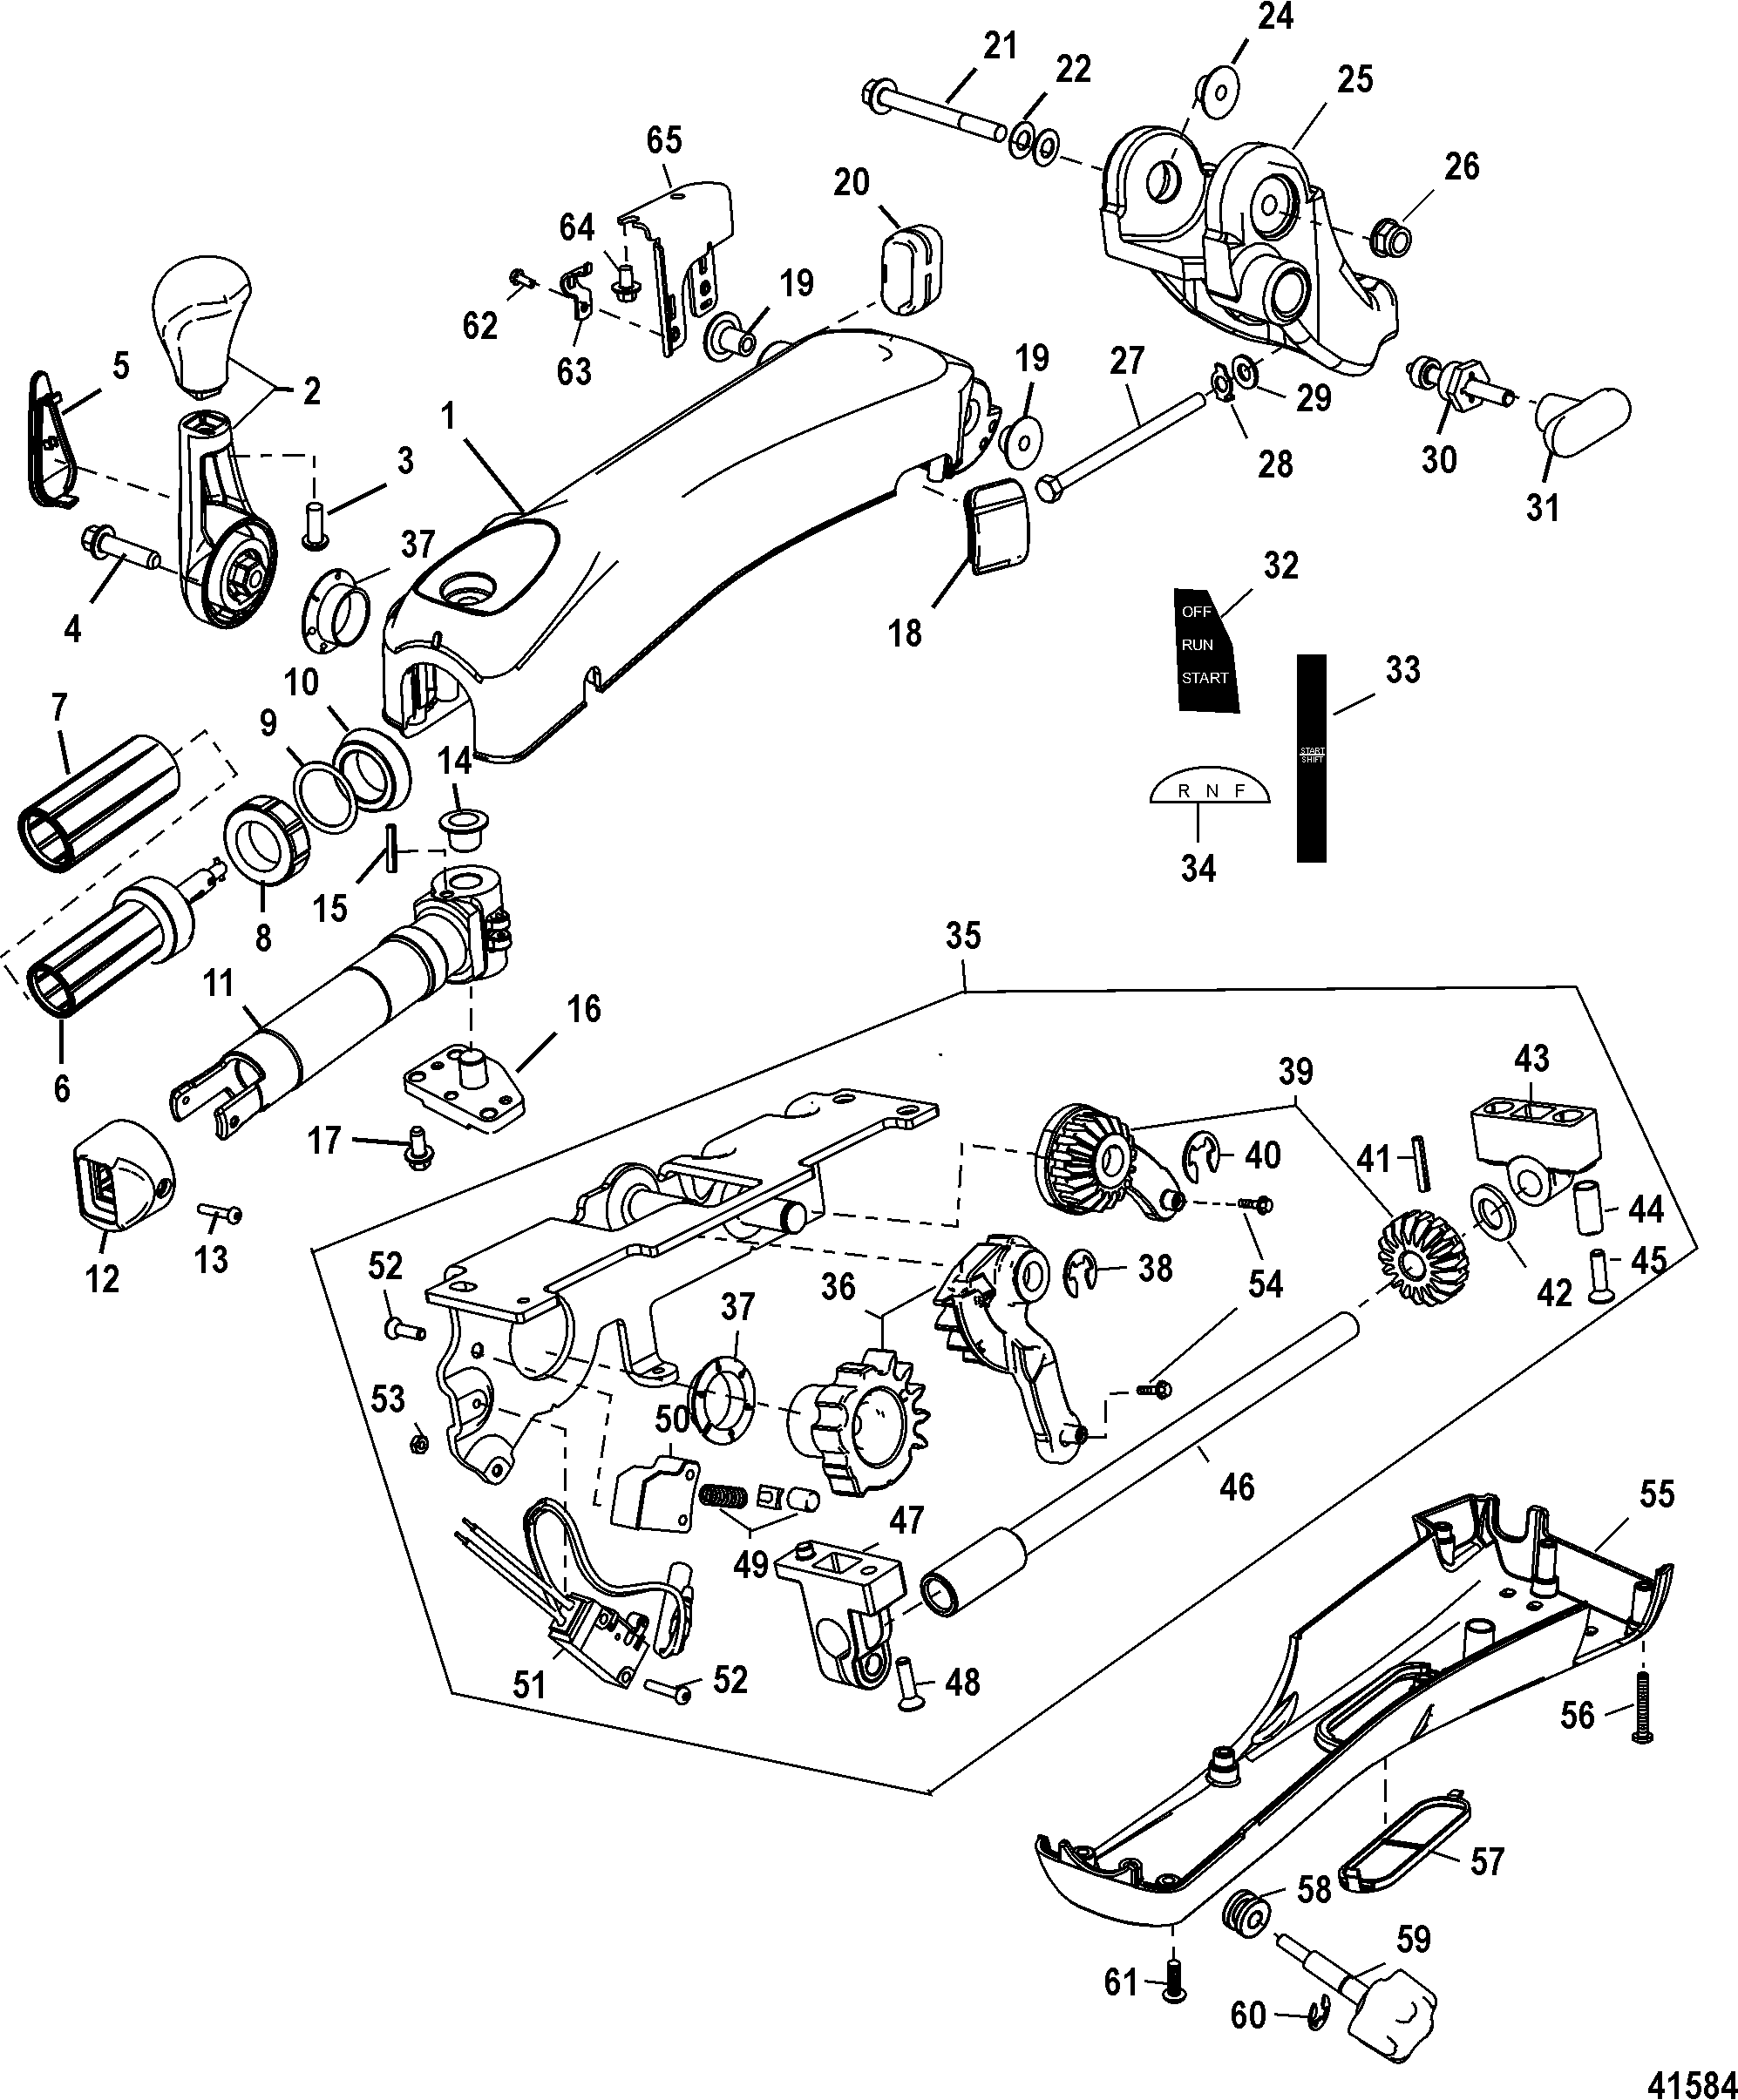 Show_product on Honda 250 Wiring Diagram